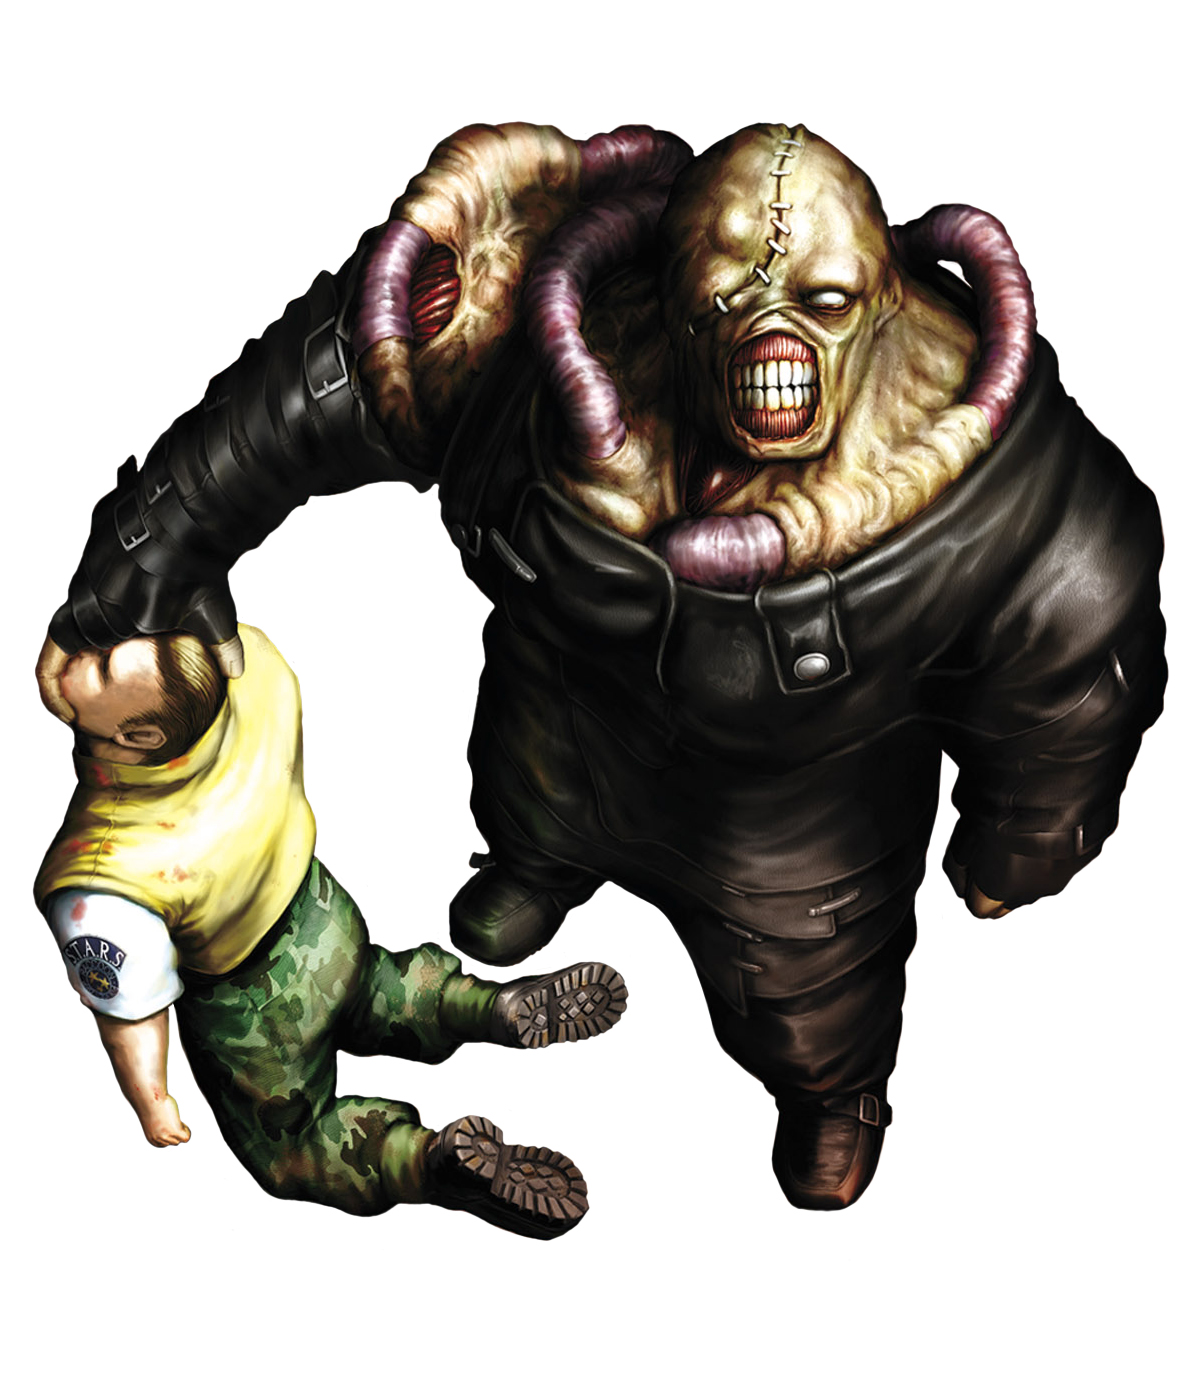 Nemesis-T02 - Resident Evil Wiki - The Resident Evil encyclopedia